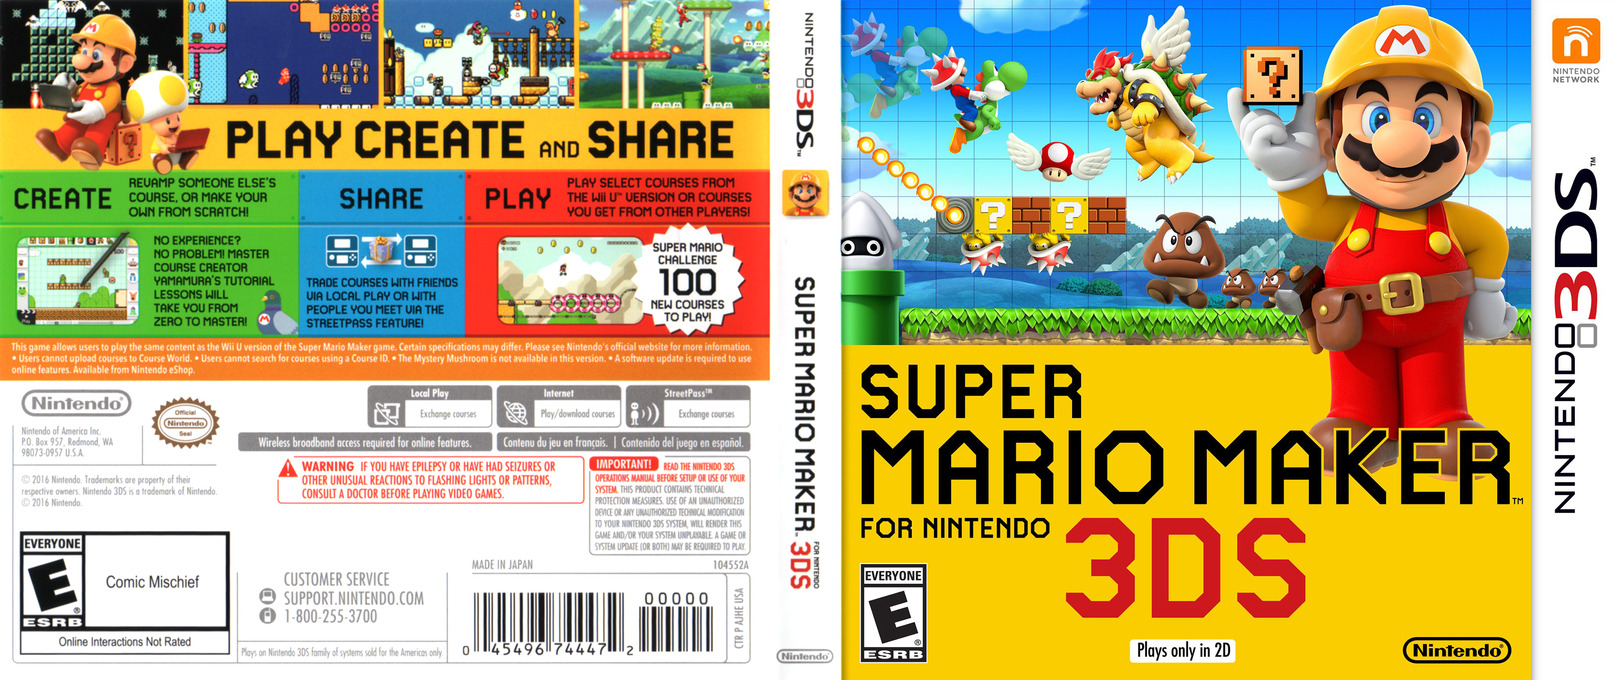 Super Mario Maker for Nintendo 3DS 3DS coverfullHQ (AJHE)